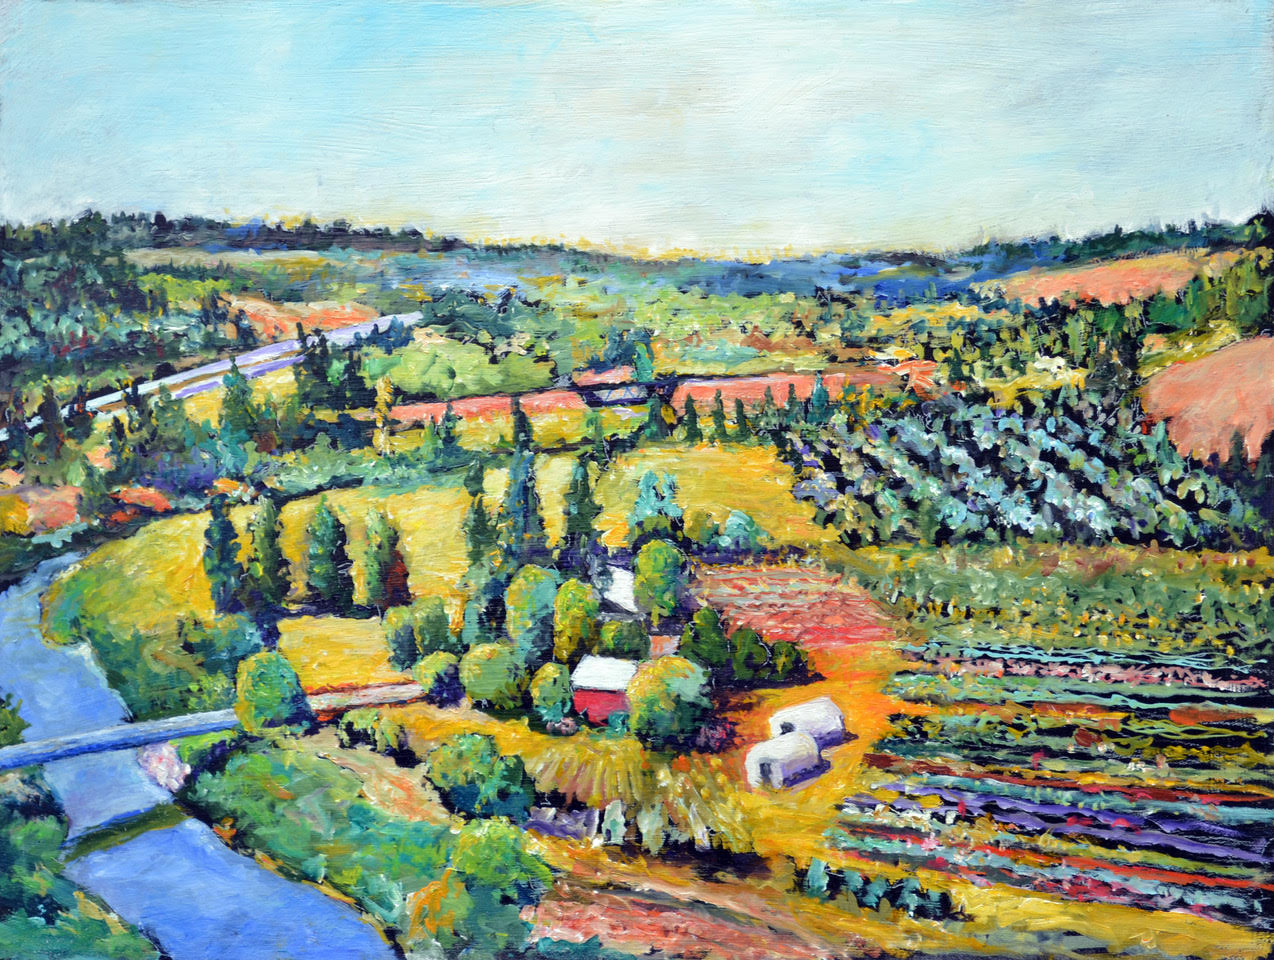 'Dream Farm' painting by LR Montgomery